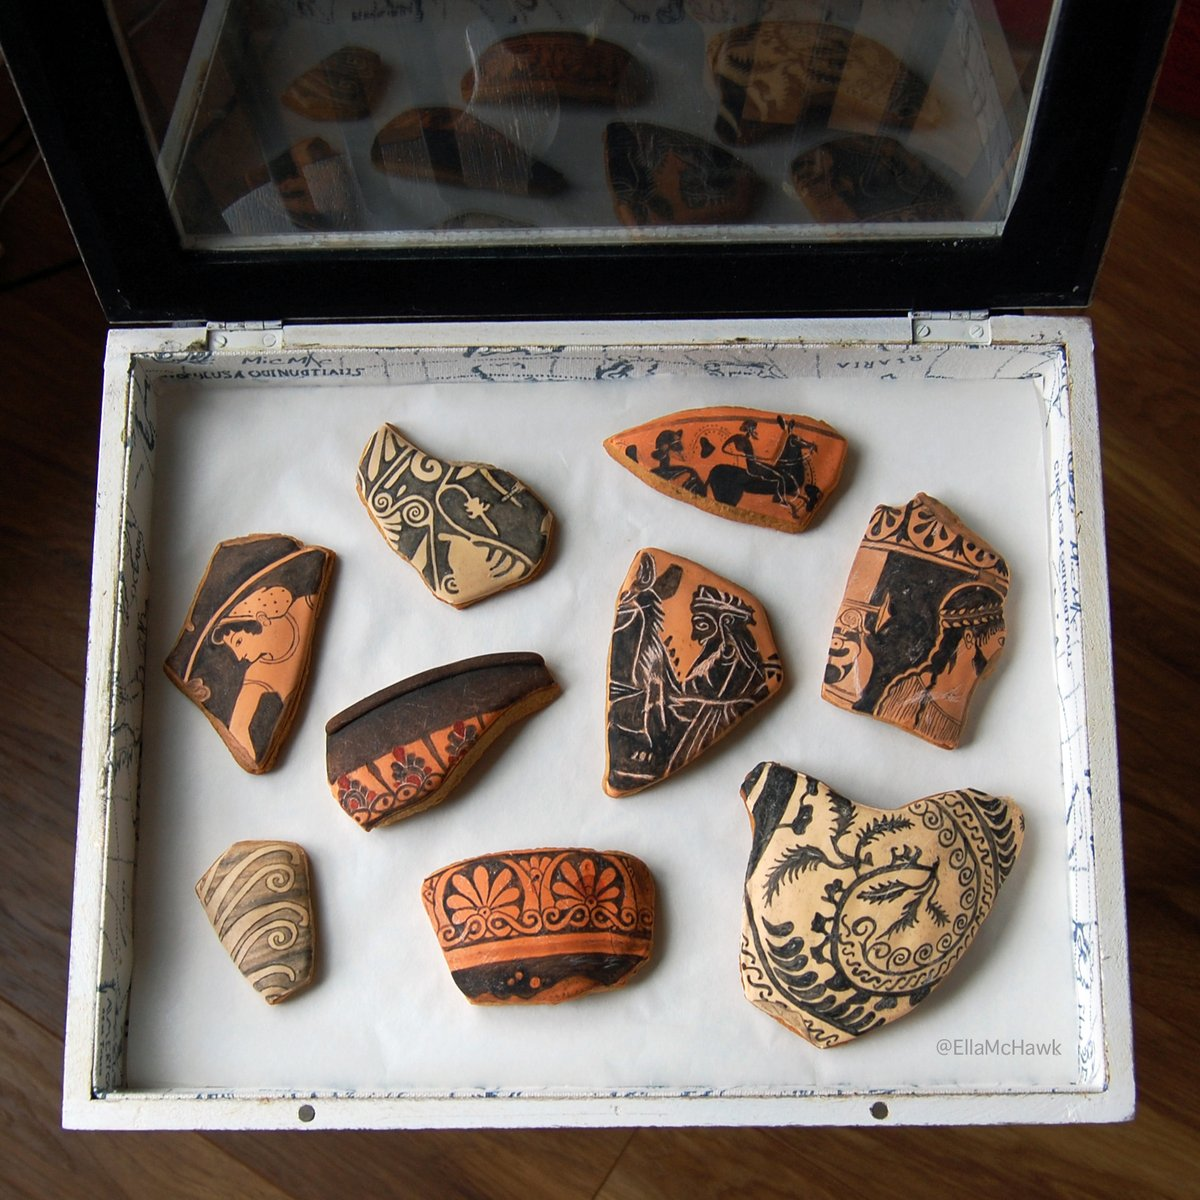 Cookies baked to look like pottery sherds